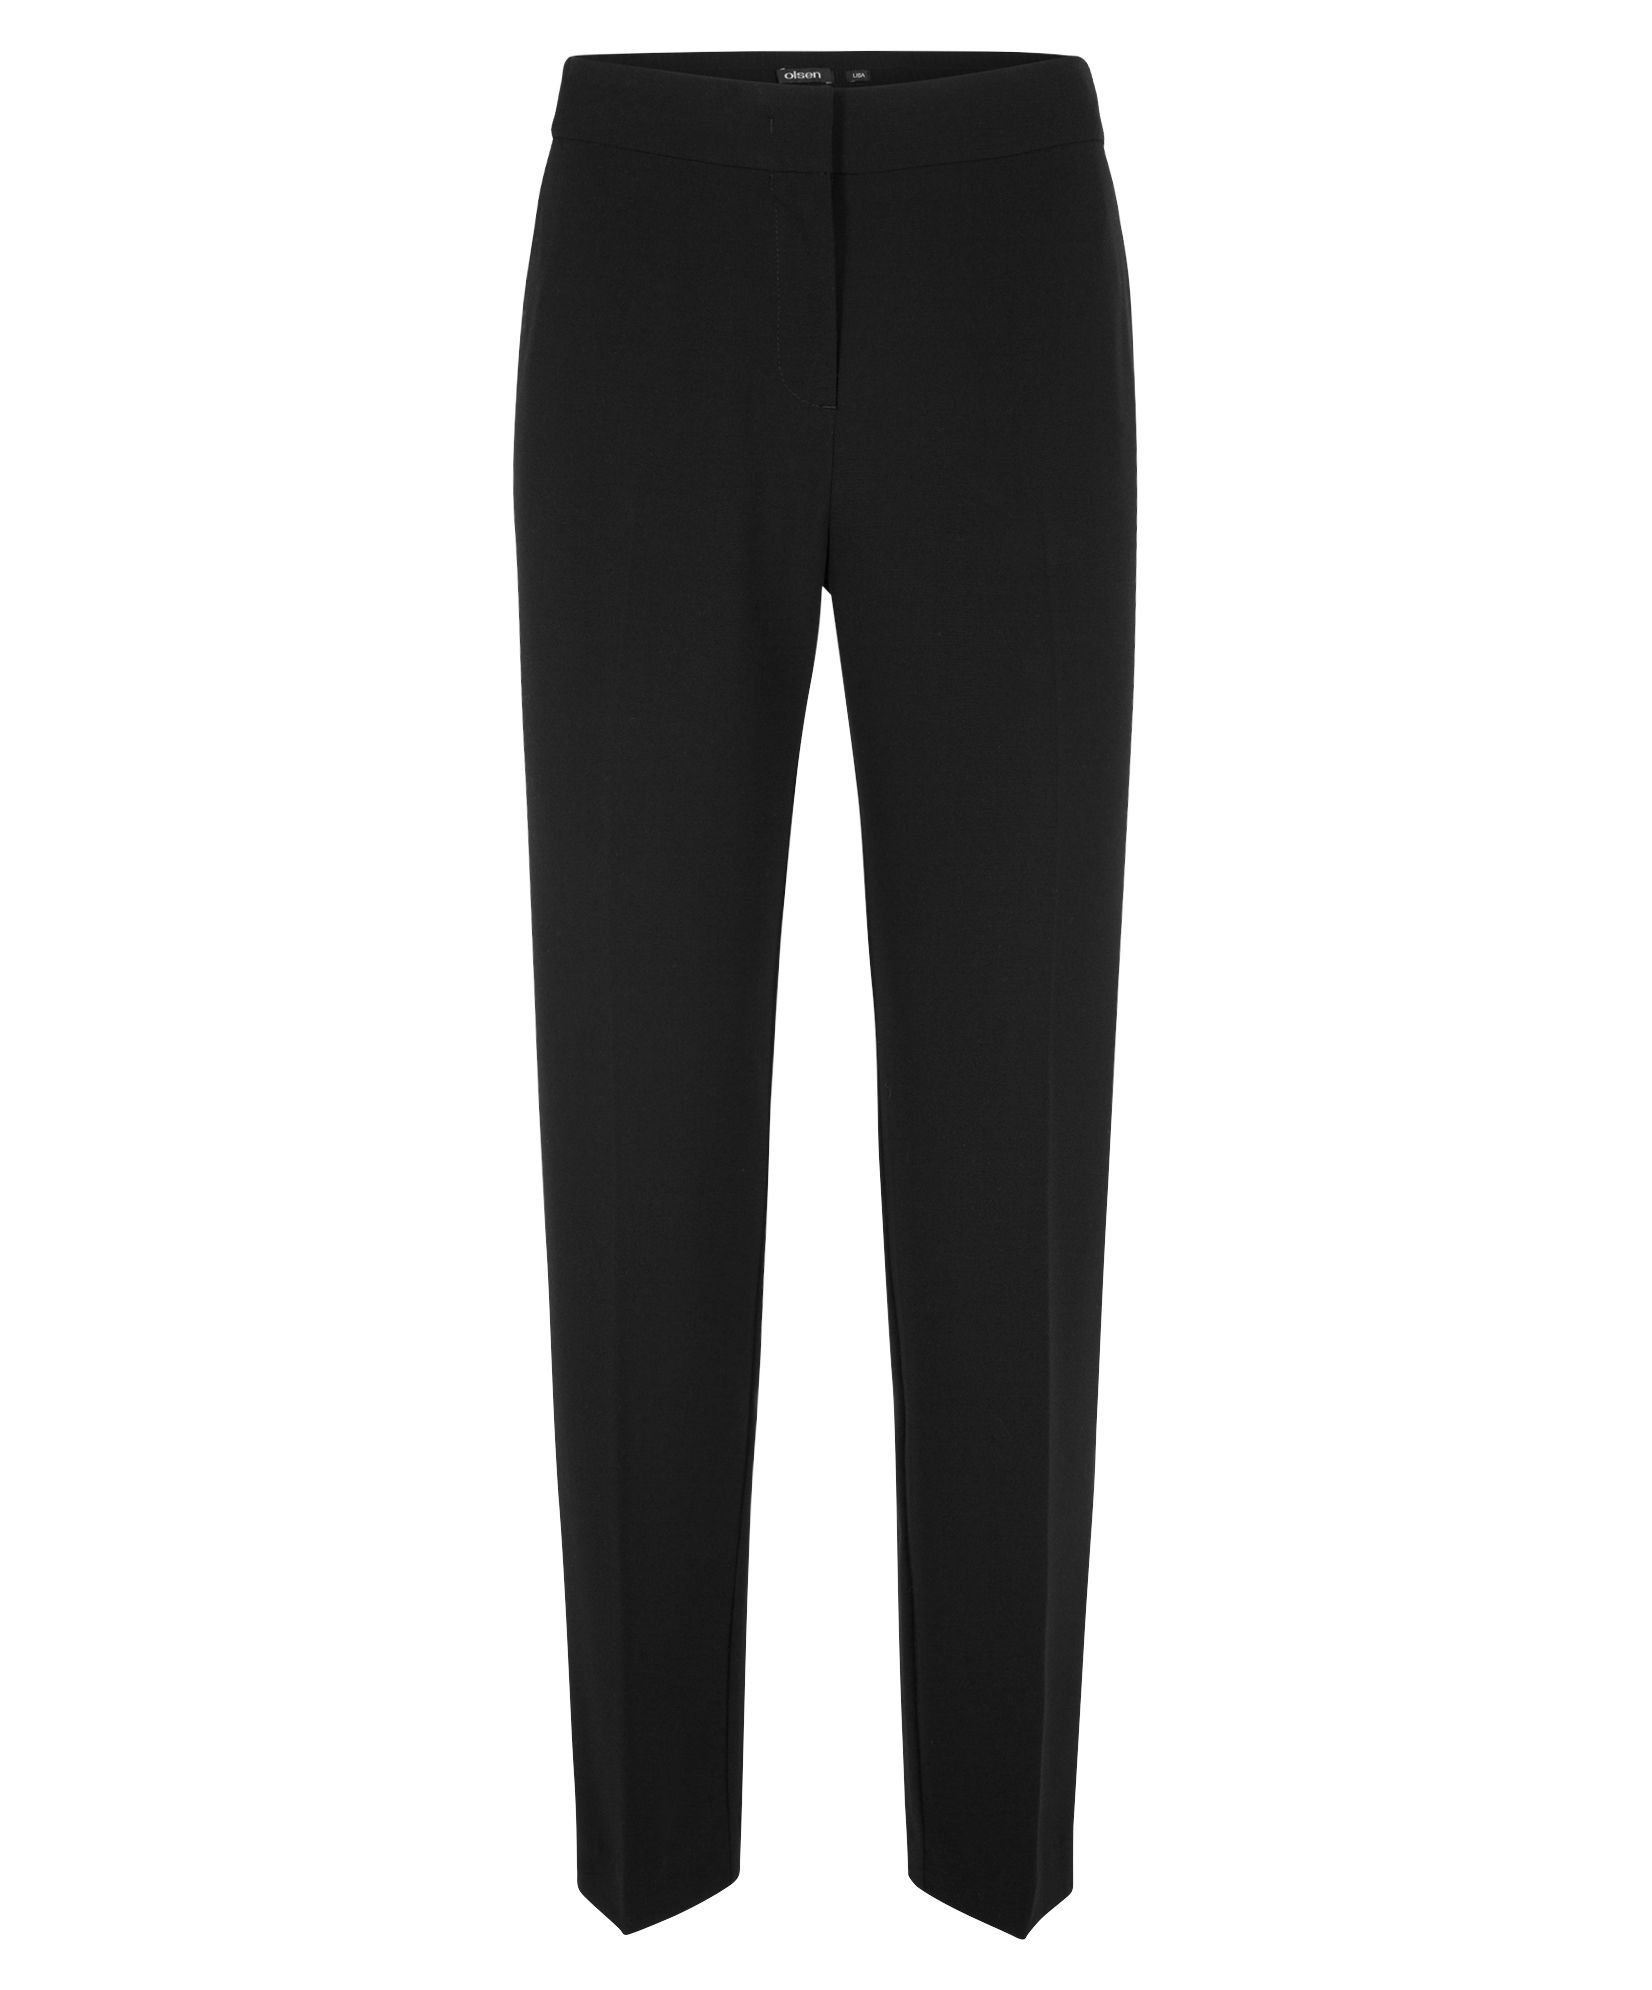 Olsen Relaxed Lisa trousers, Black